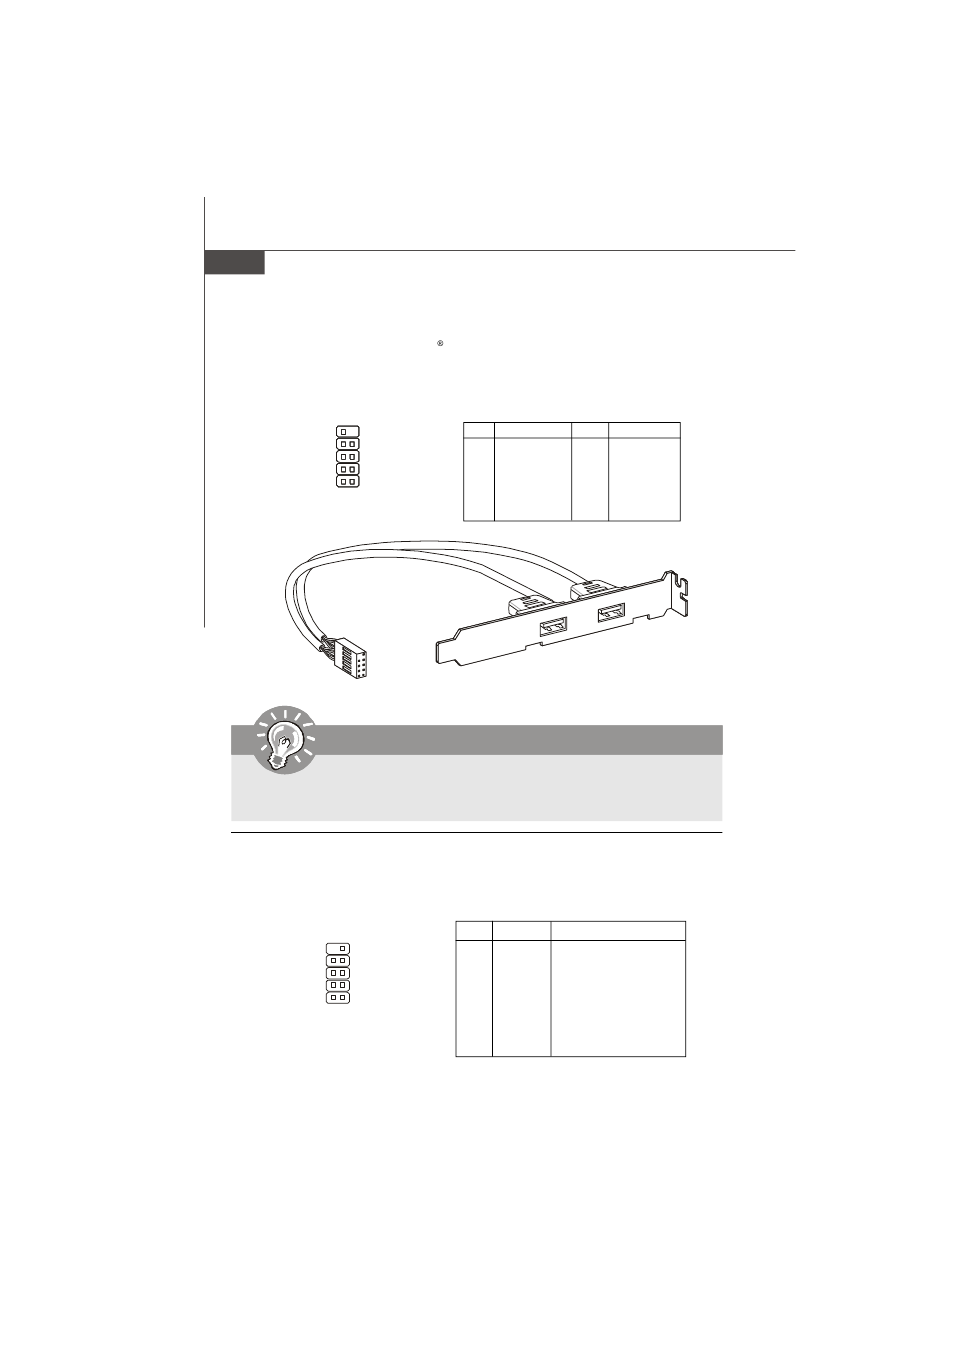 Important Front Usb Connector Jusb1 Jusb2 Jusb3 Serial Port To Wiring Diagram